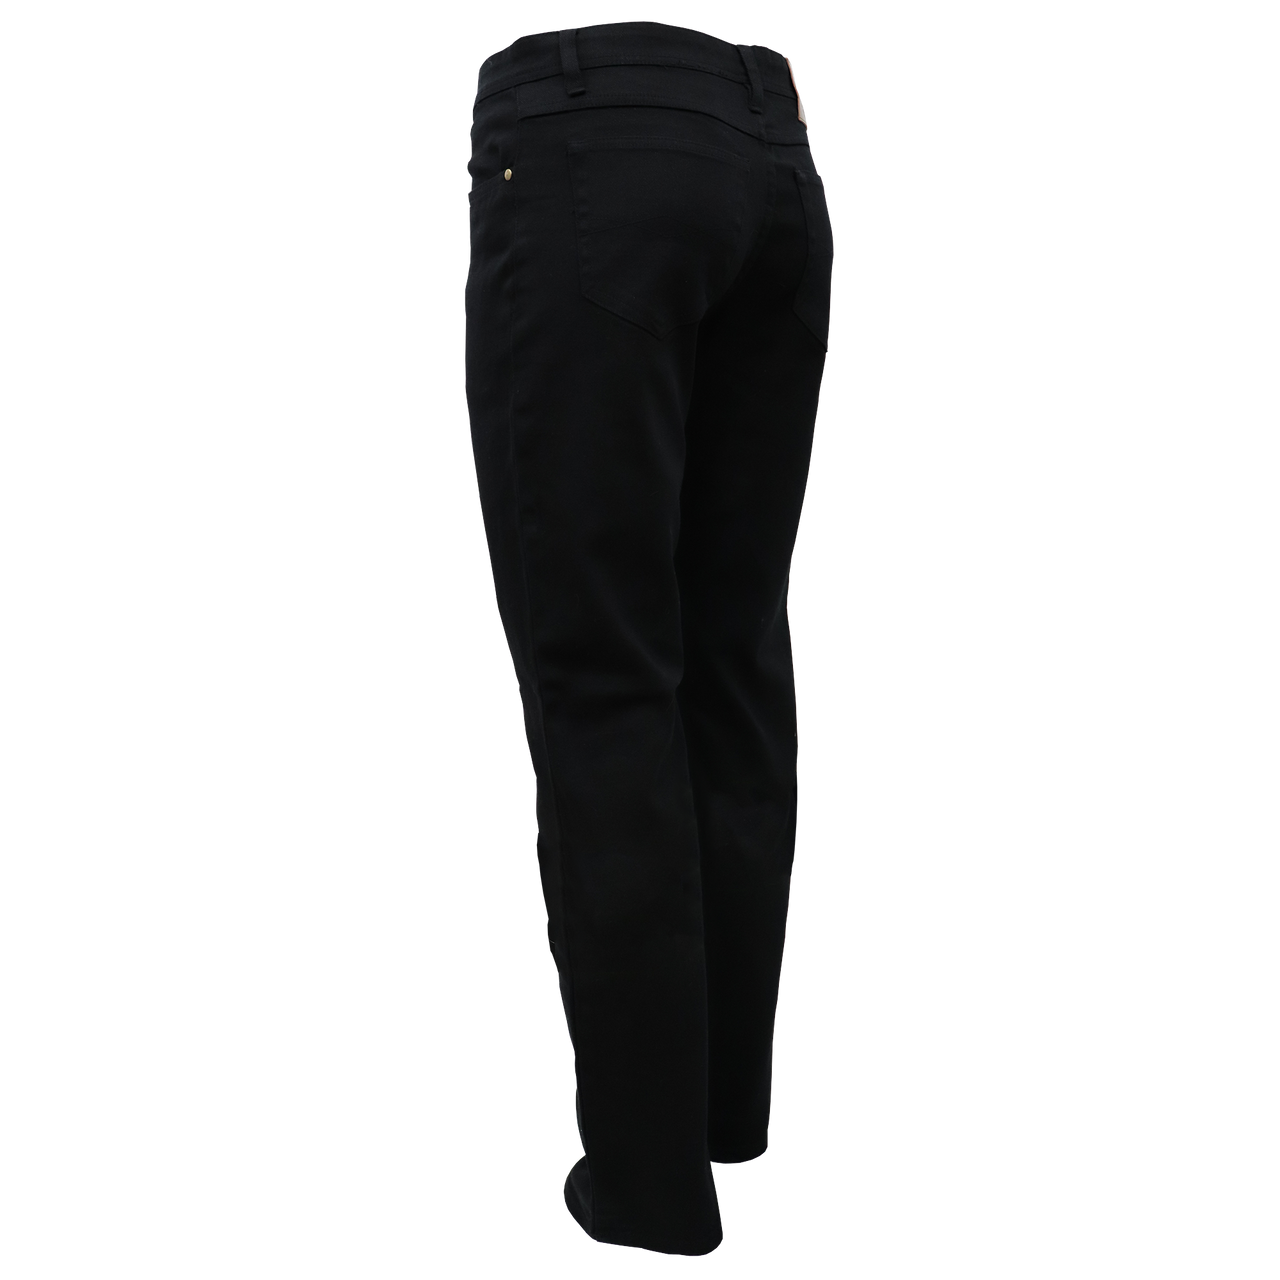 SMR200 - Jeans Extensible ||SMR200 - Stretch Jeans